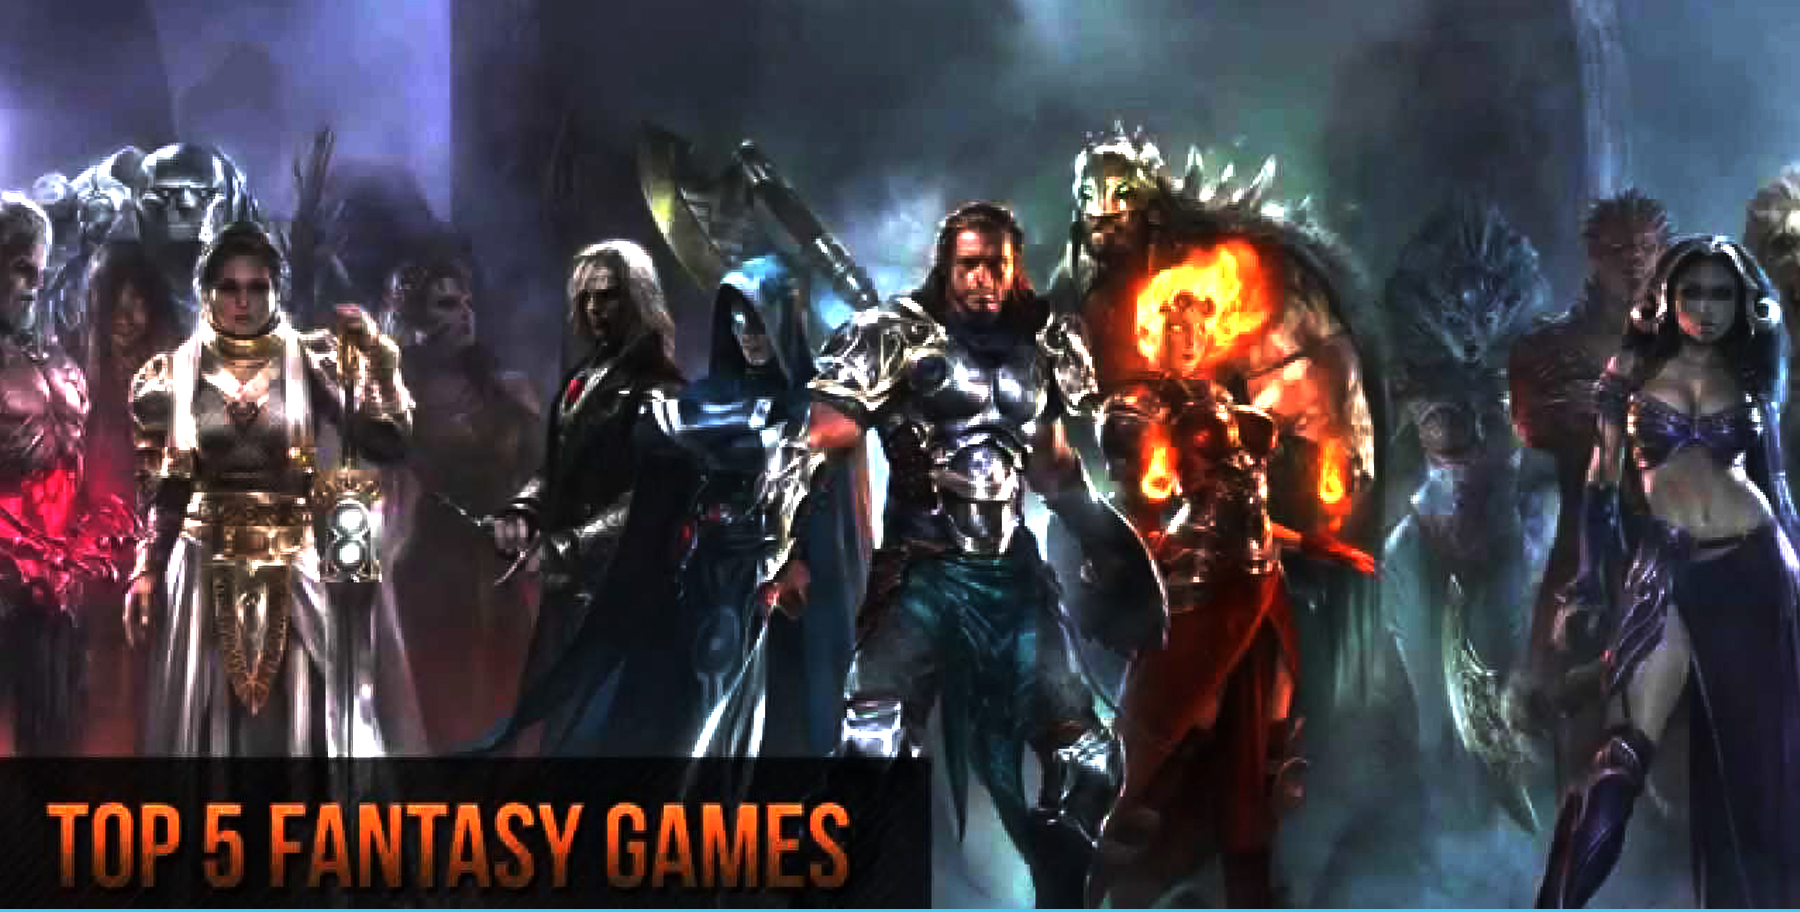 Top 5 Virtual Fantasy Games to Play #HARD